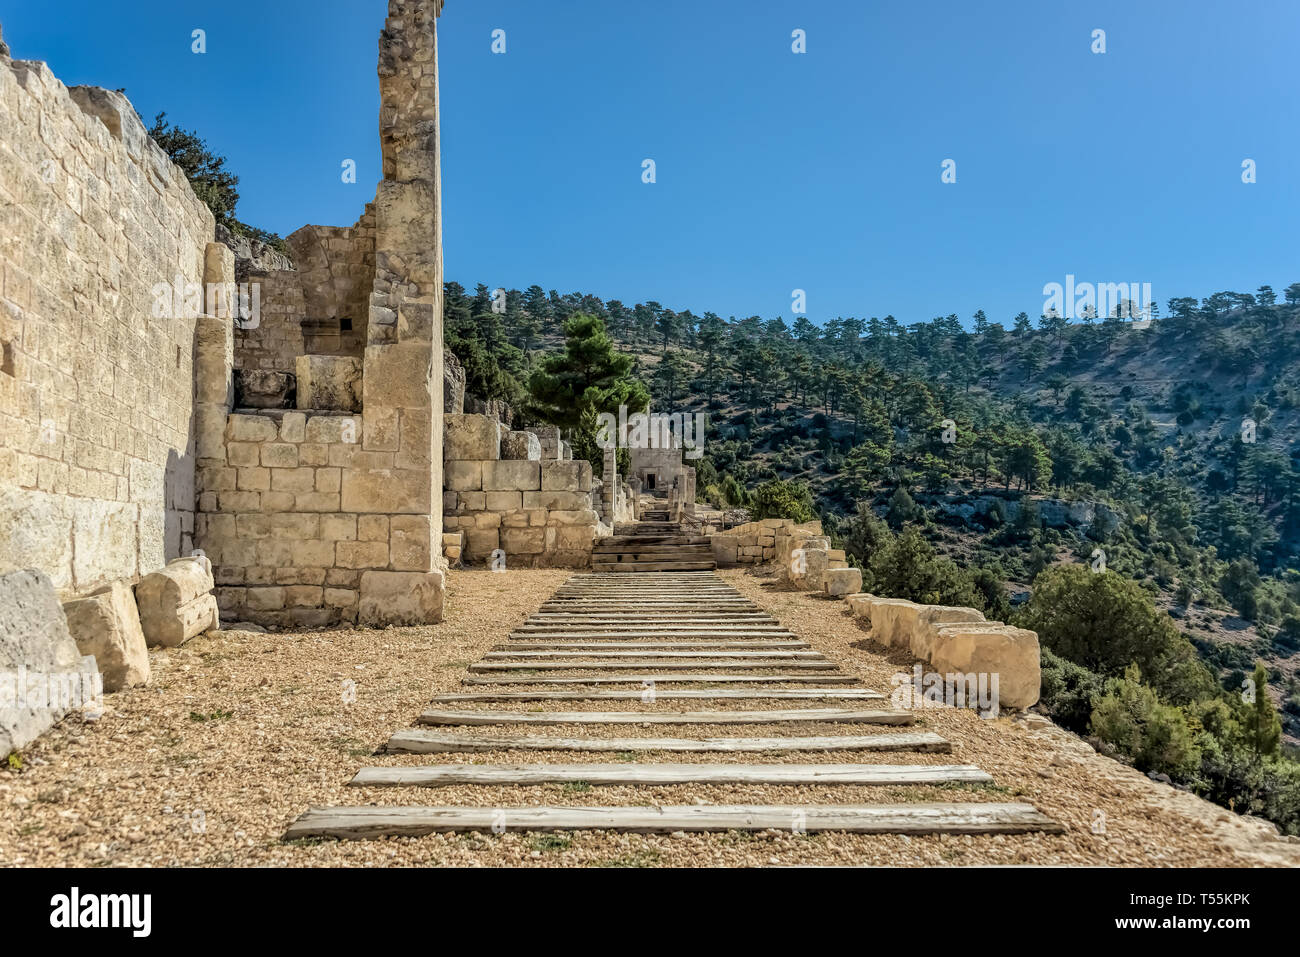 Alahan is a late Roman ecclesiastical complex a monastry built on a series of terraces towards the top of a mountain in southern Anatolia, Turkey - Stock Image